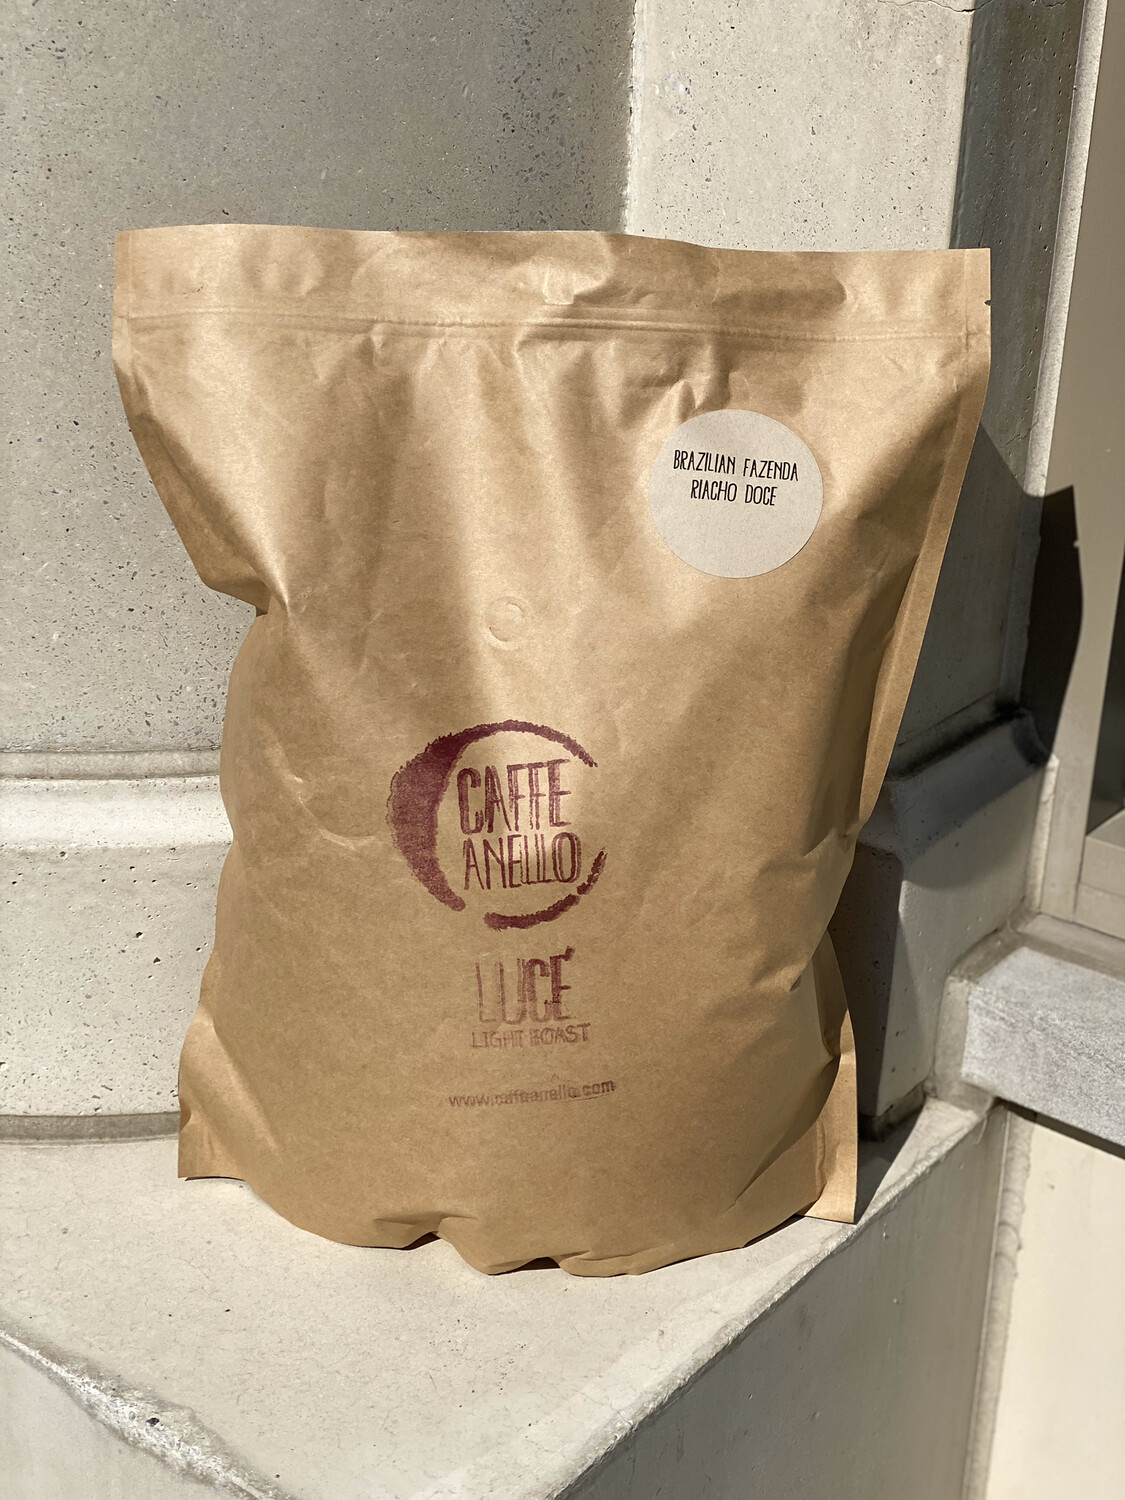 5 pounds fresh roasted coffee